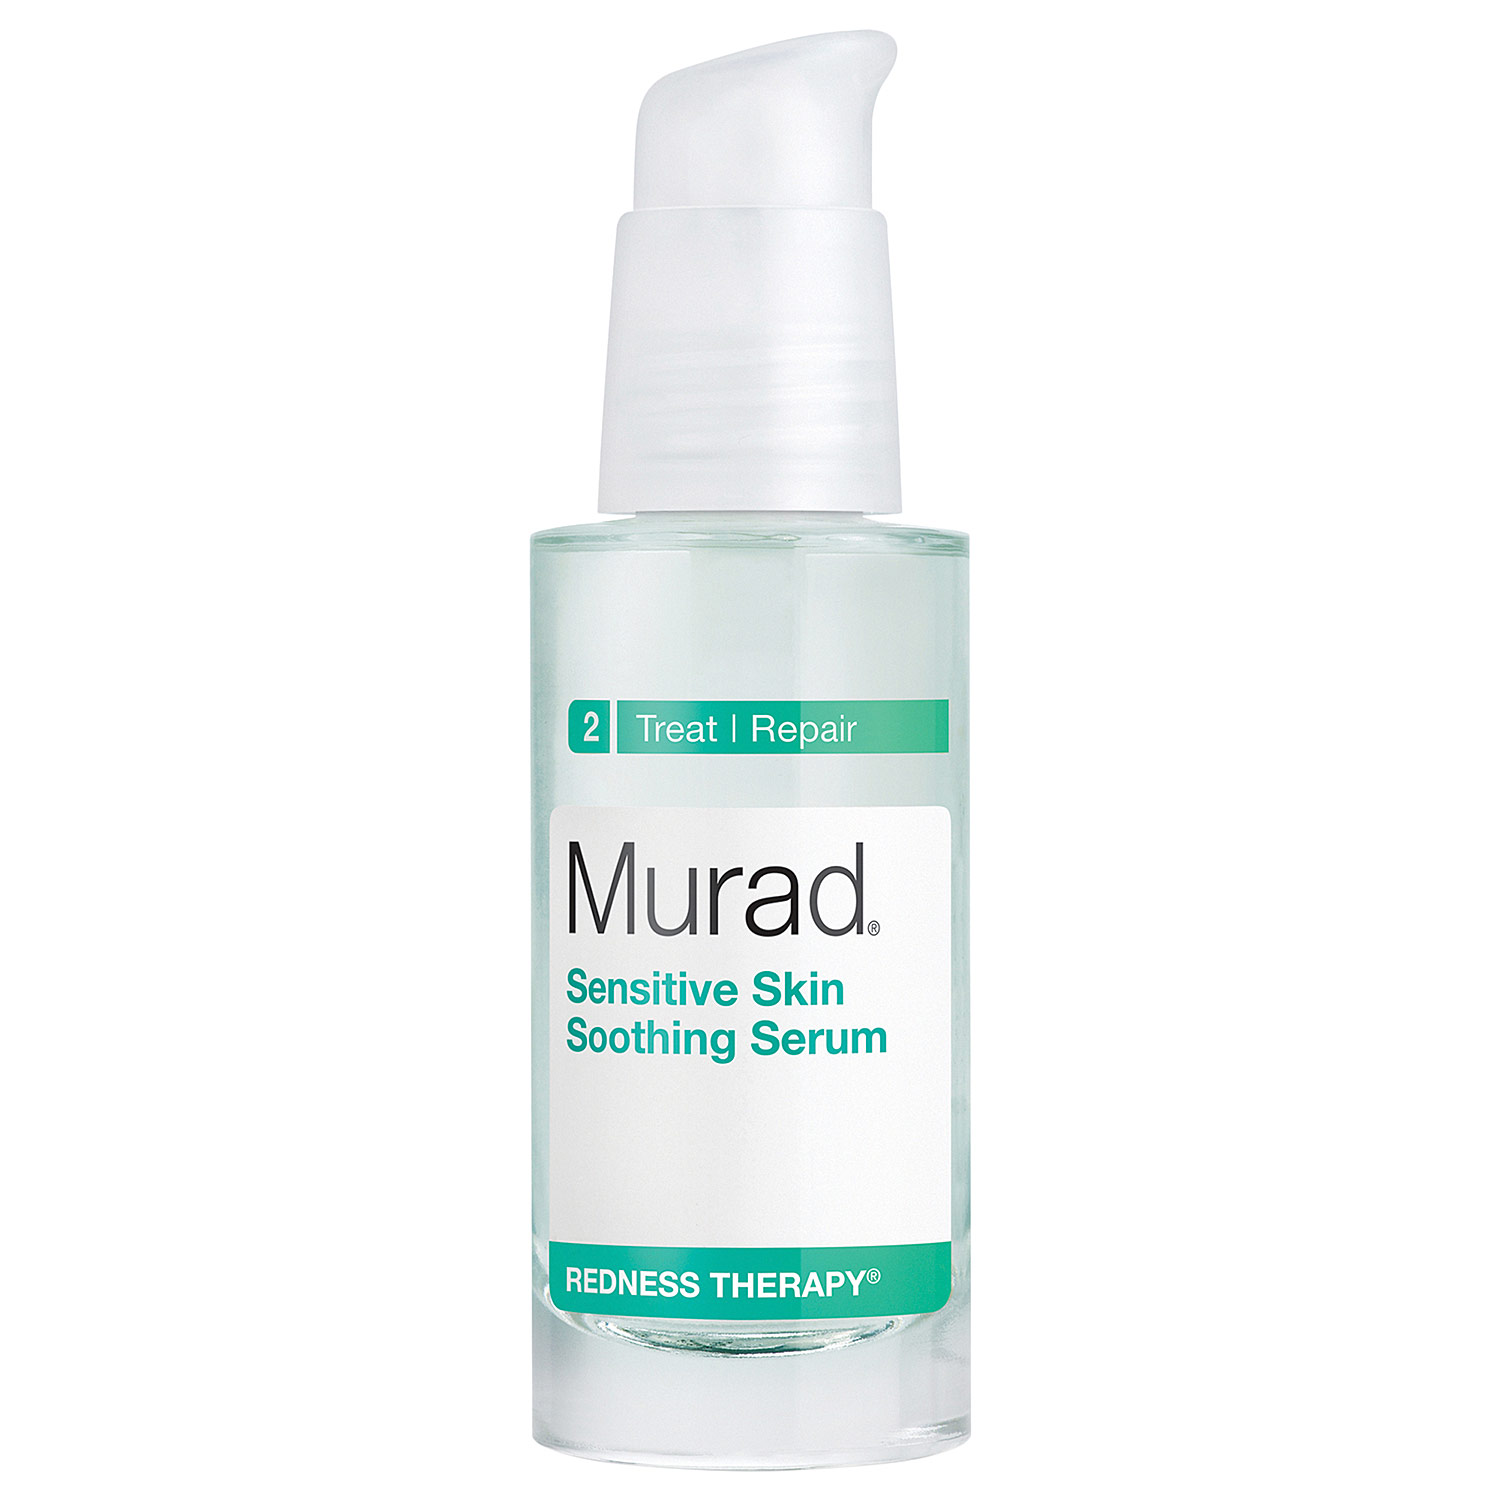 murad-sensitive-skin-serum